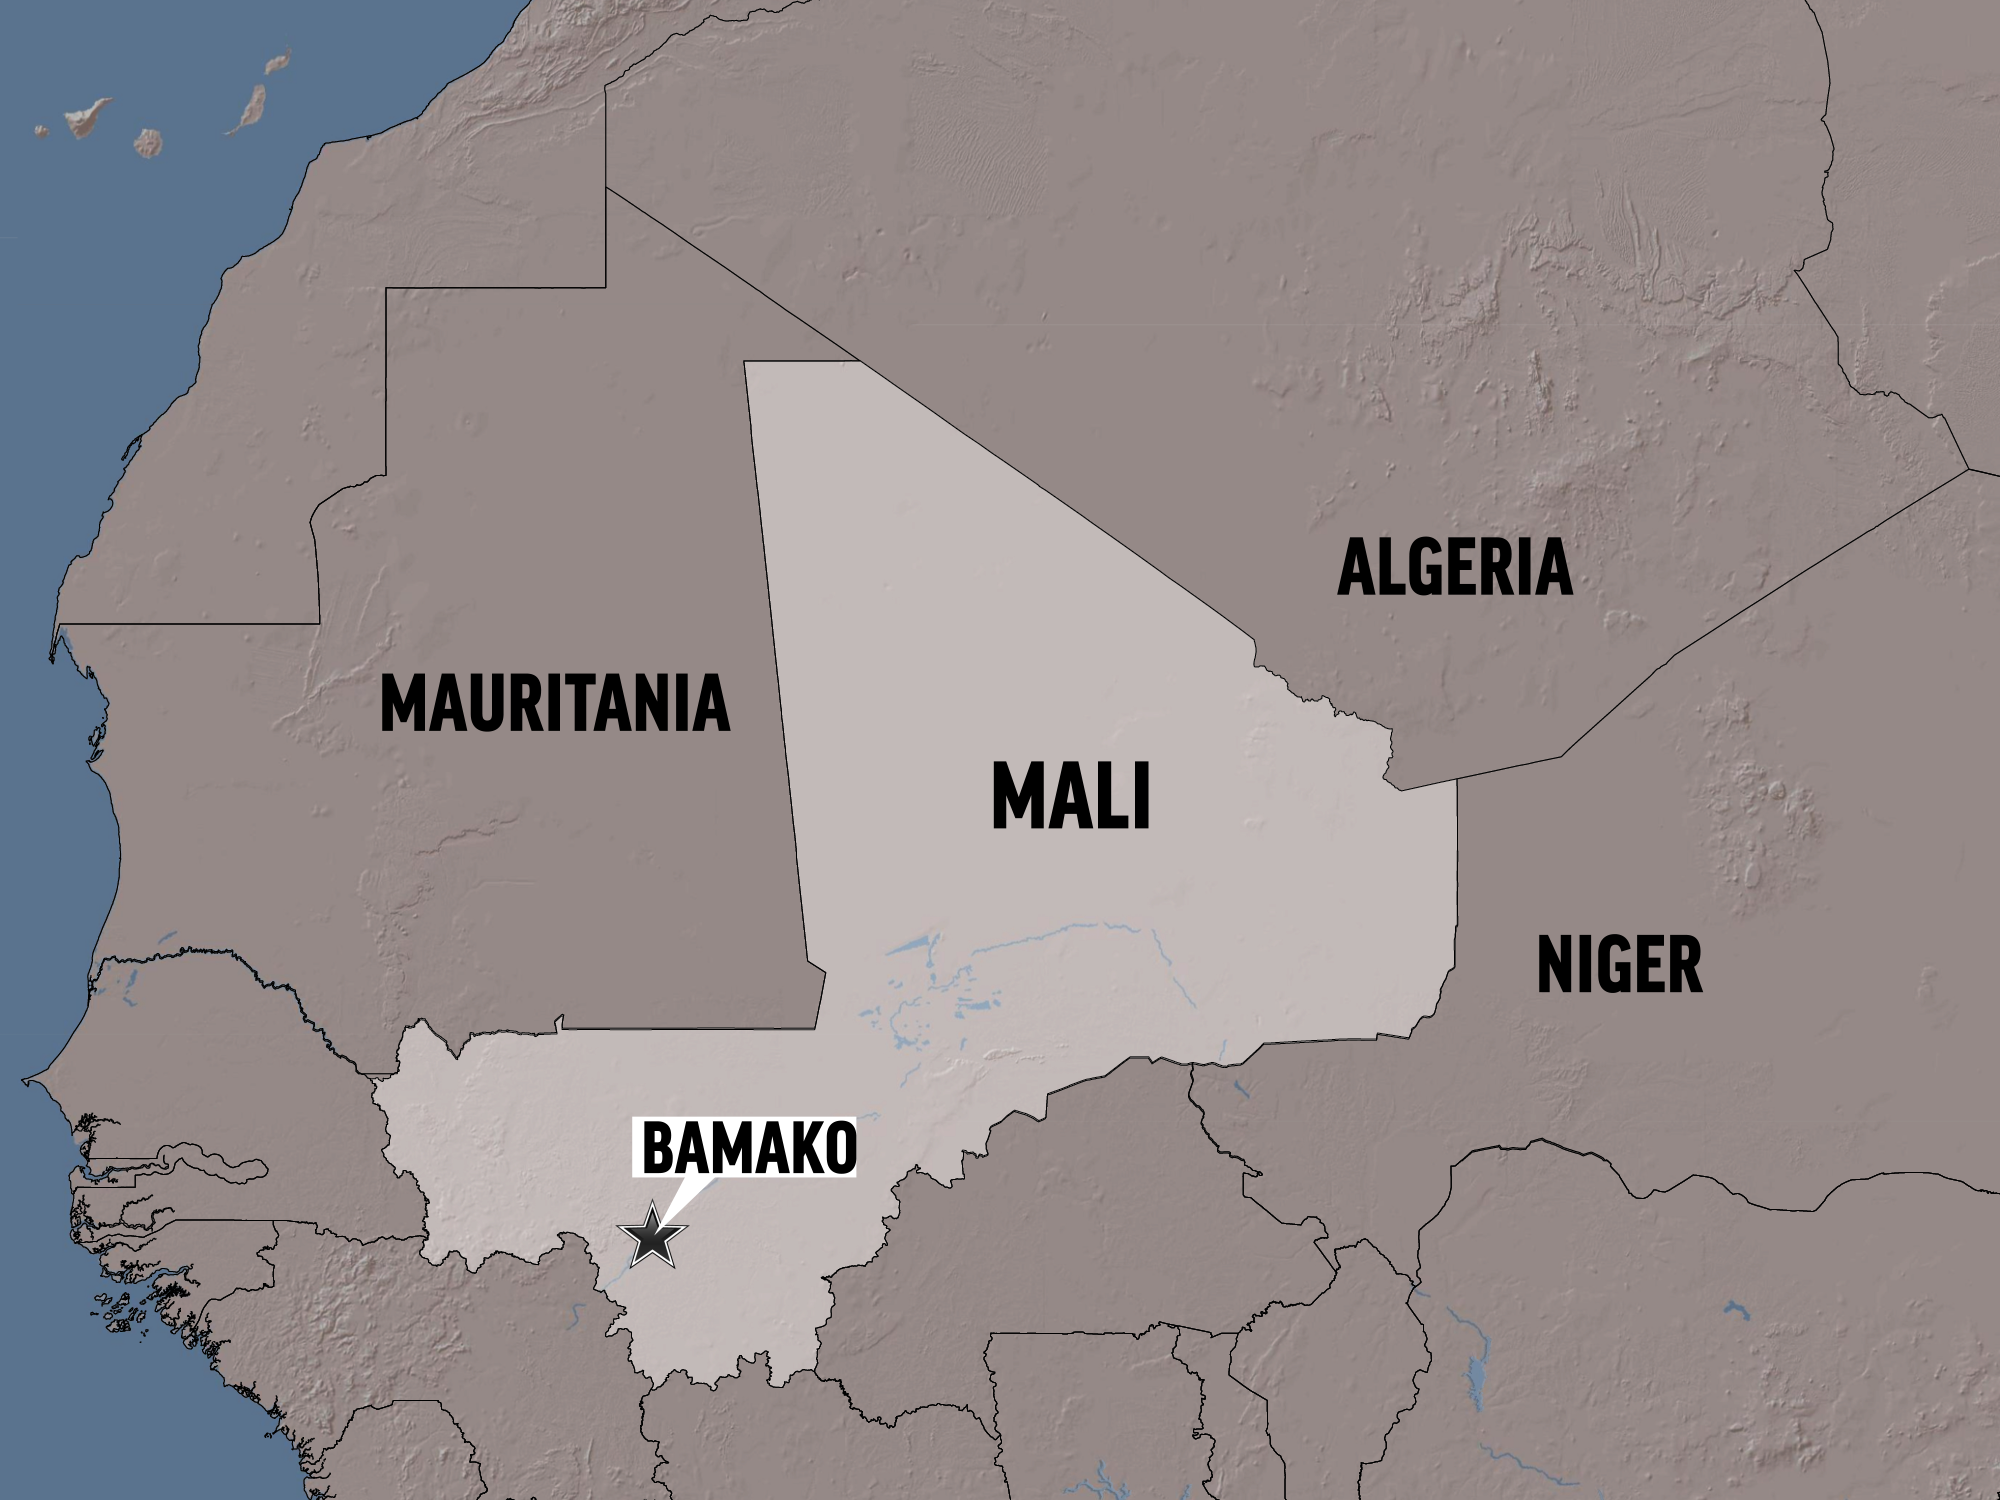 Mali official says at least 2 dead in attack